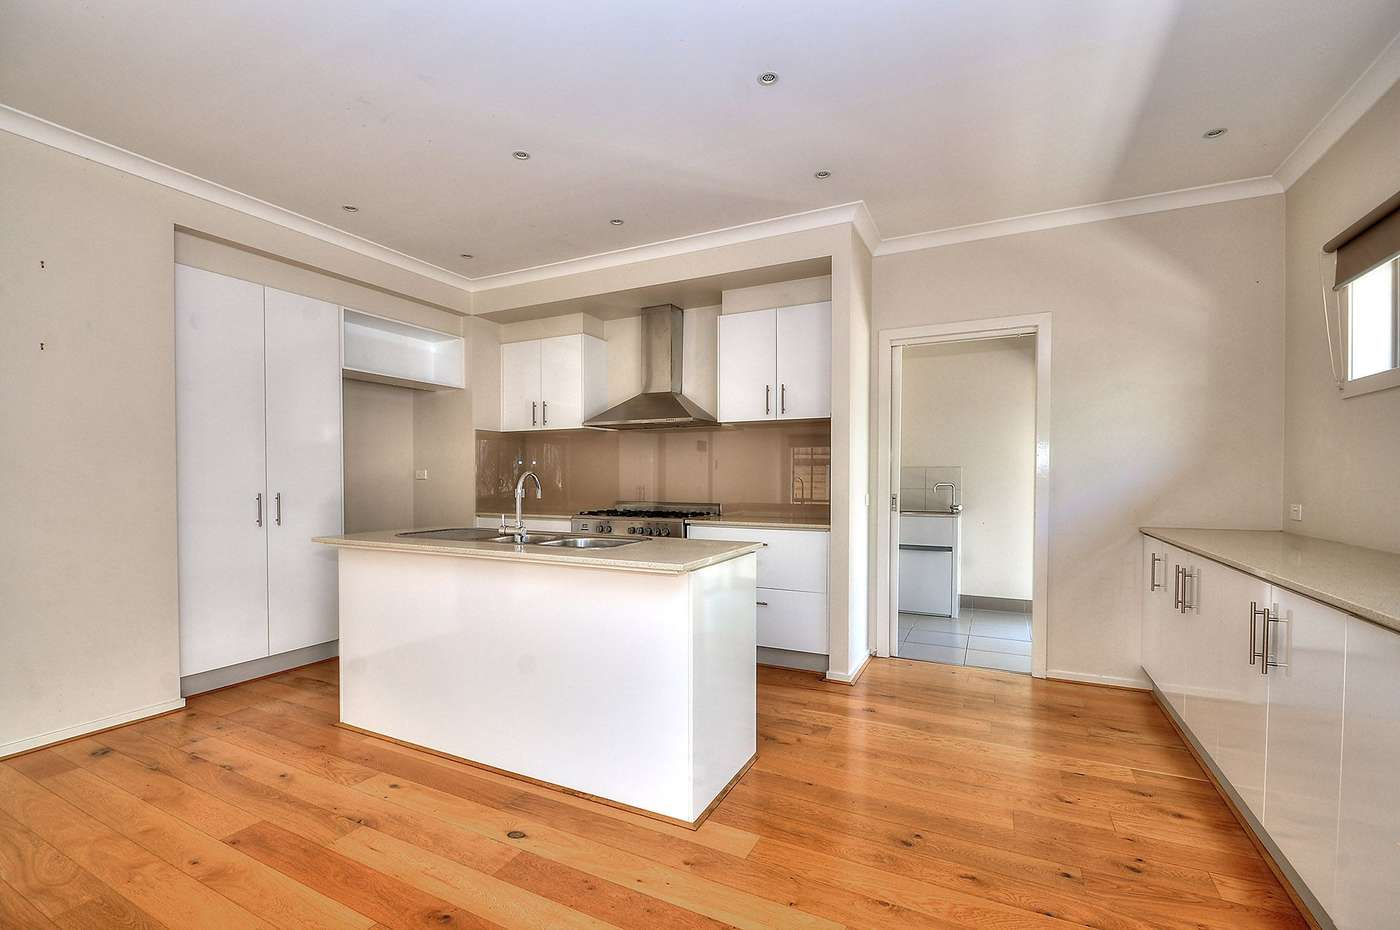 Main view of Homely townhouse listing, 8 Harvie Street, Glen Waverley, VIC 3150